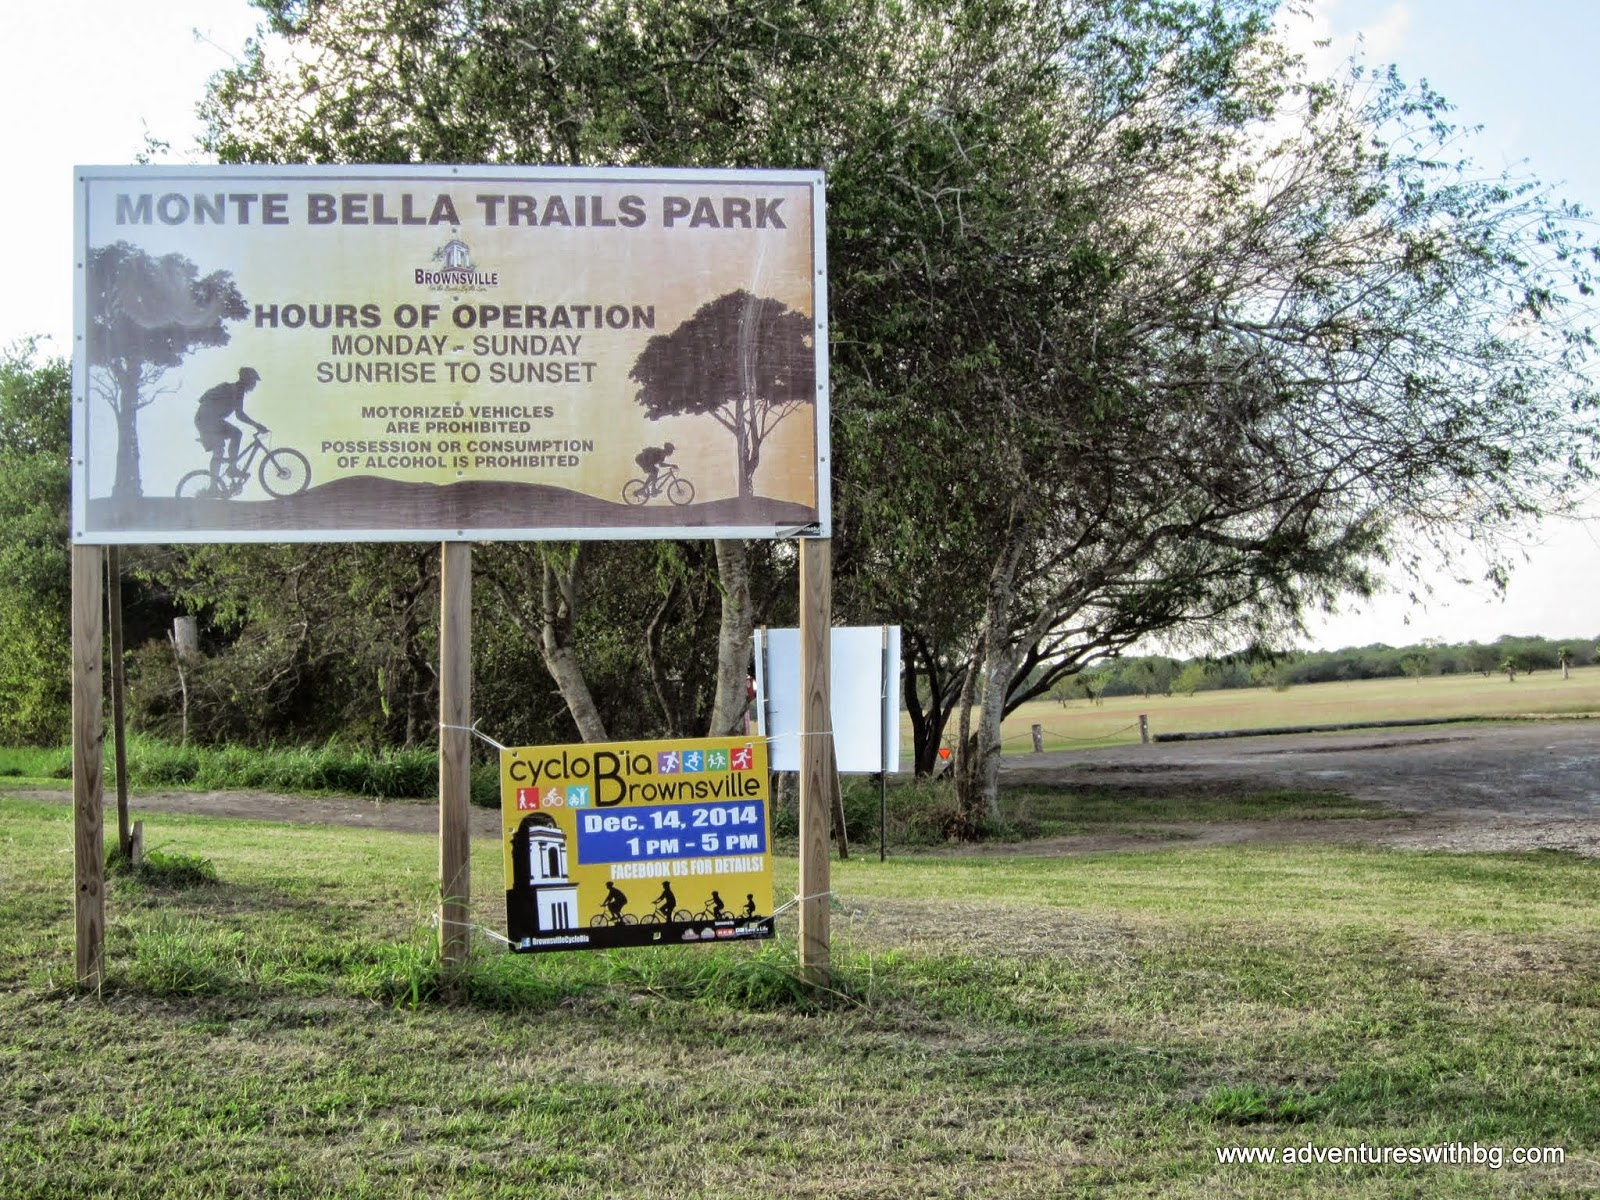 The entrance sign to the Monte Bella Trails Park